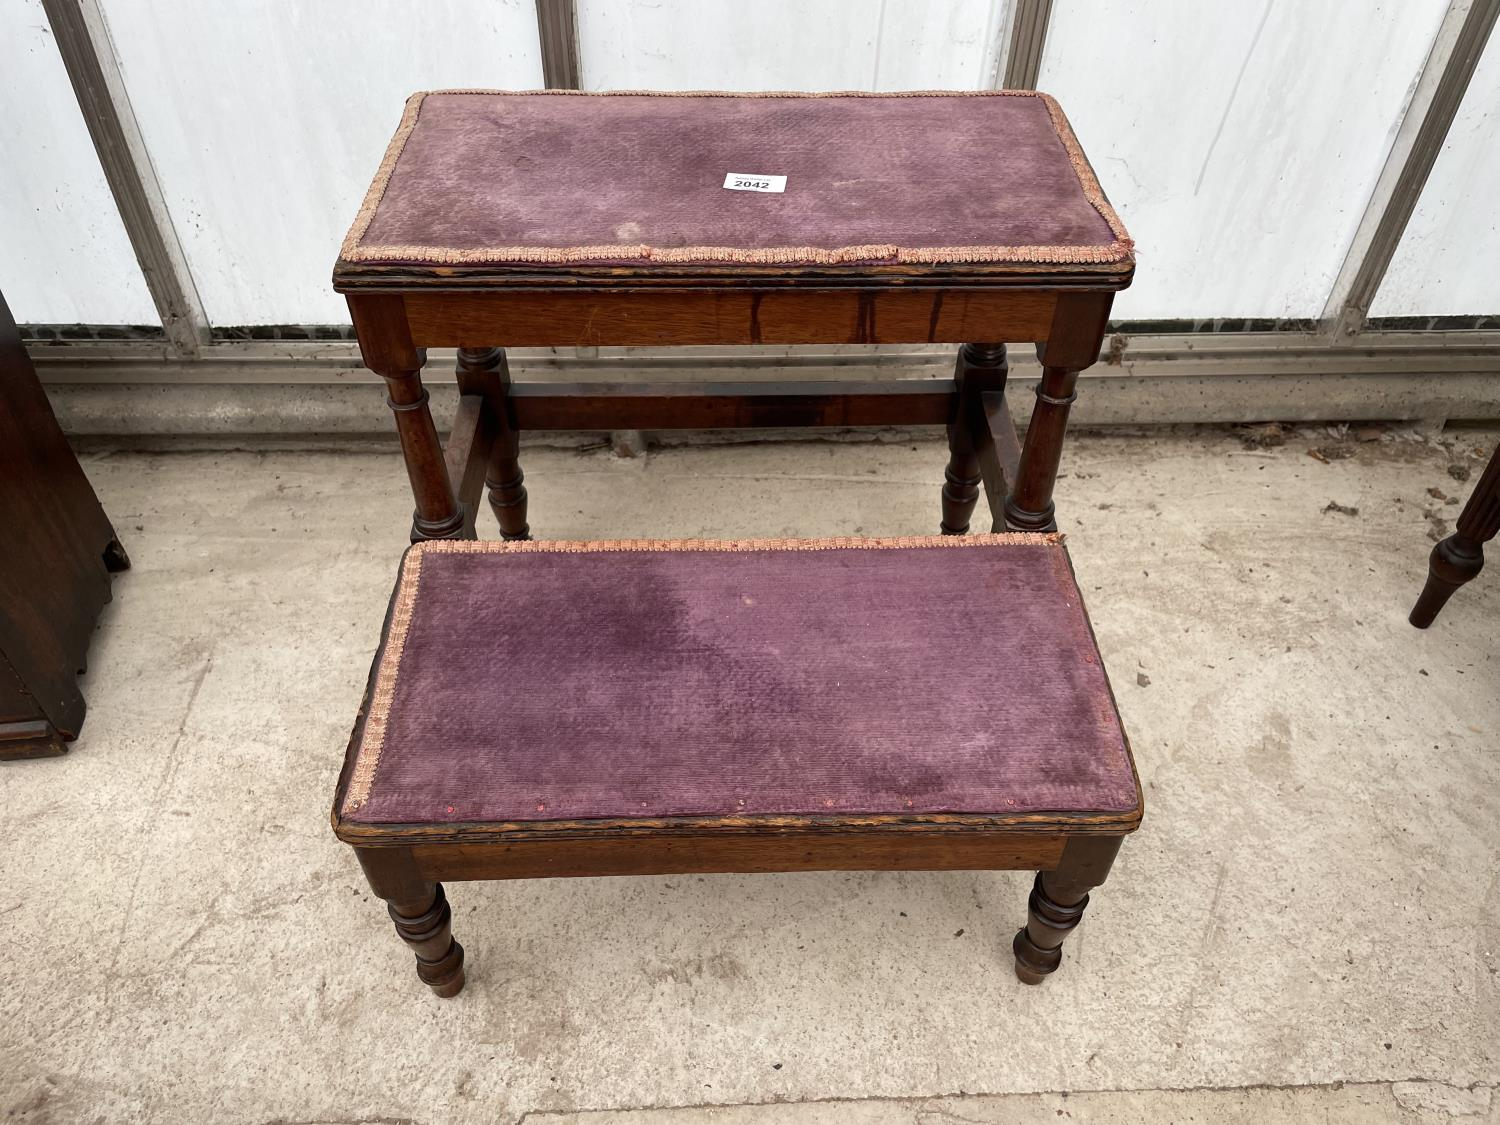 A SET OF 19TH CENTURY MAHOGANY TWO TIER LIBRARY STEPS ON TURNED LEGS